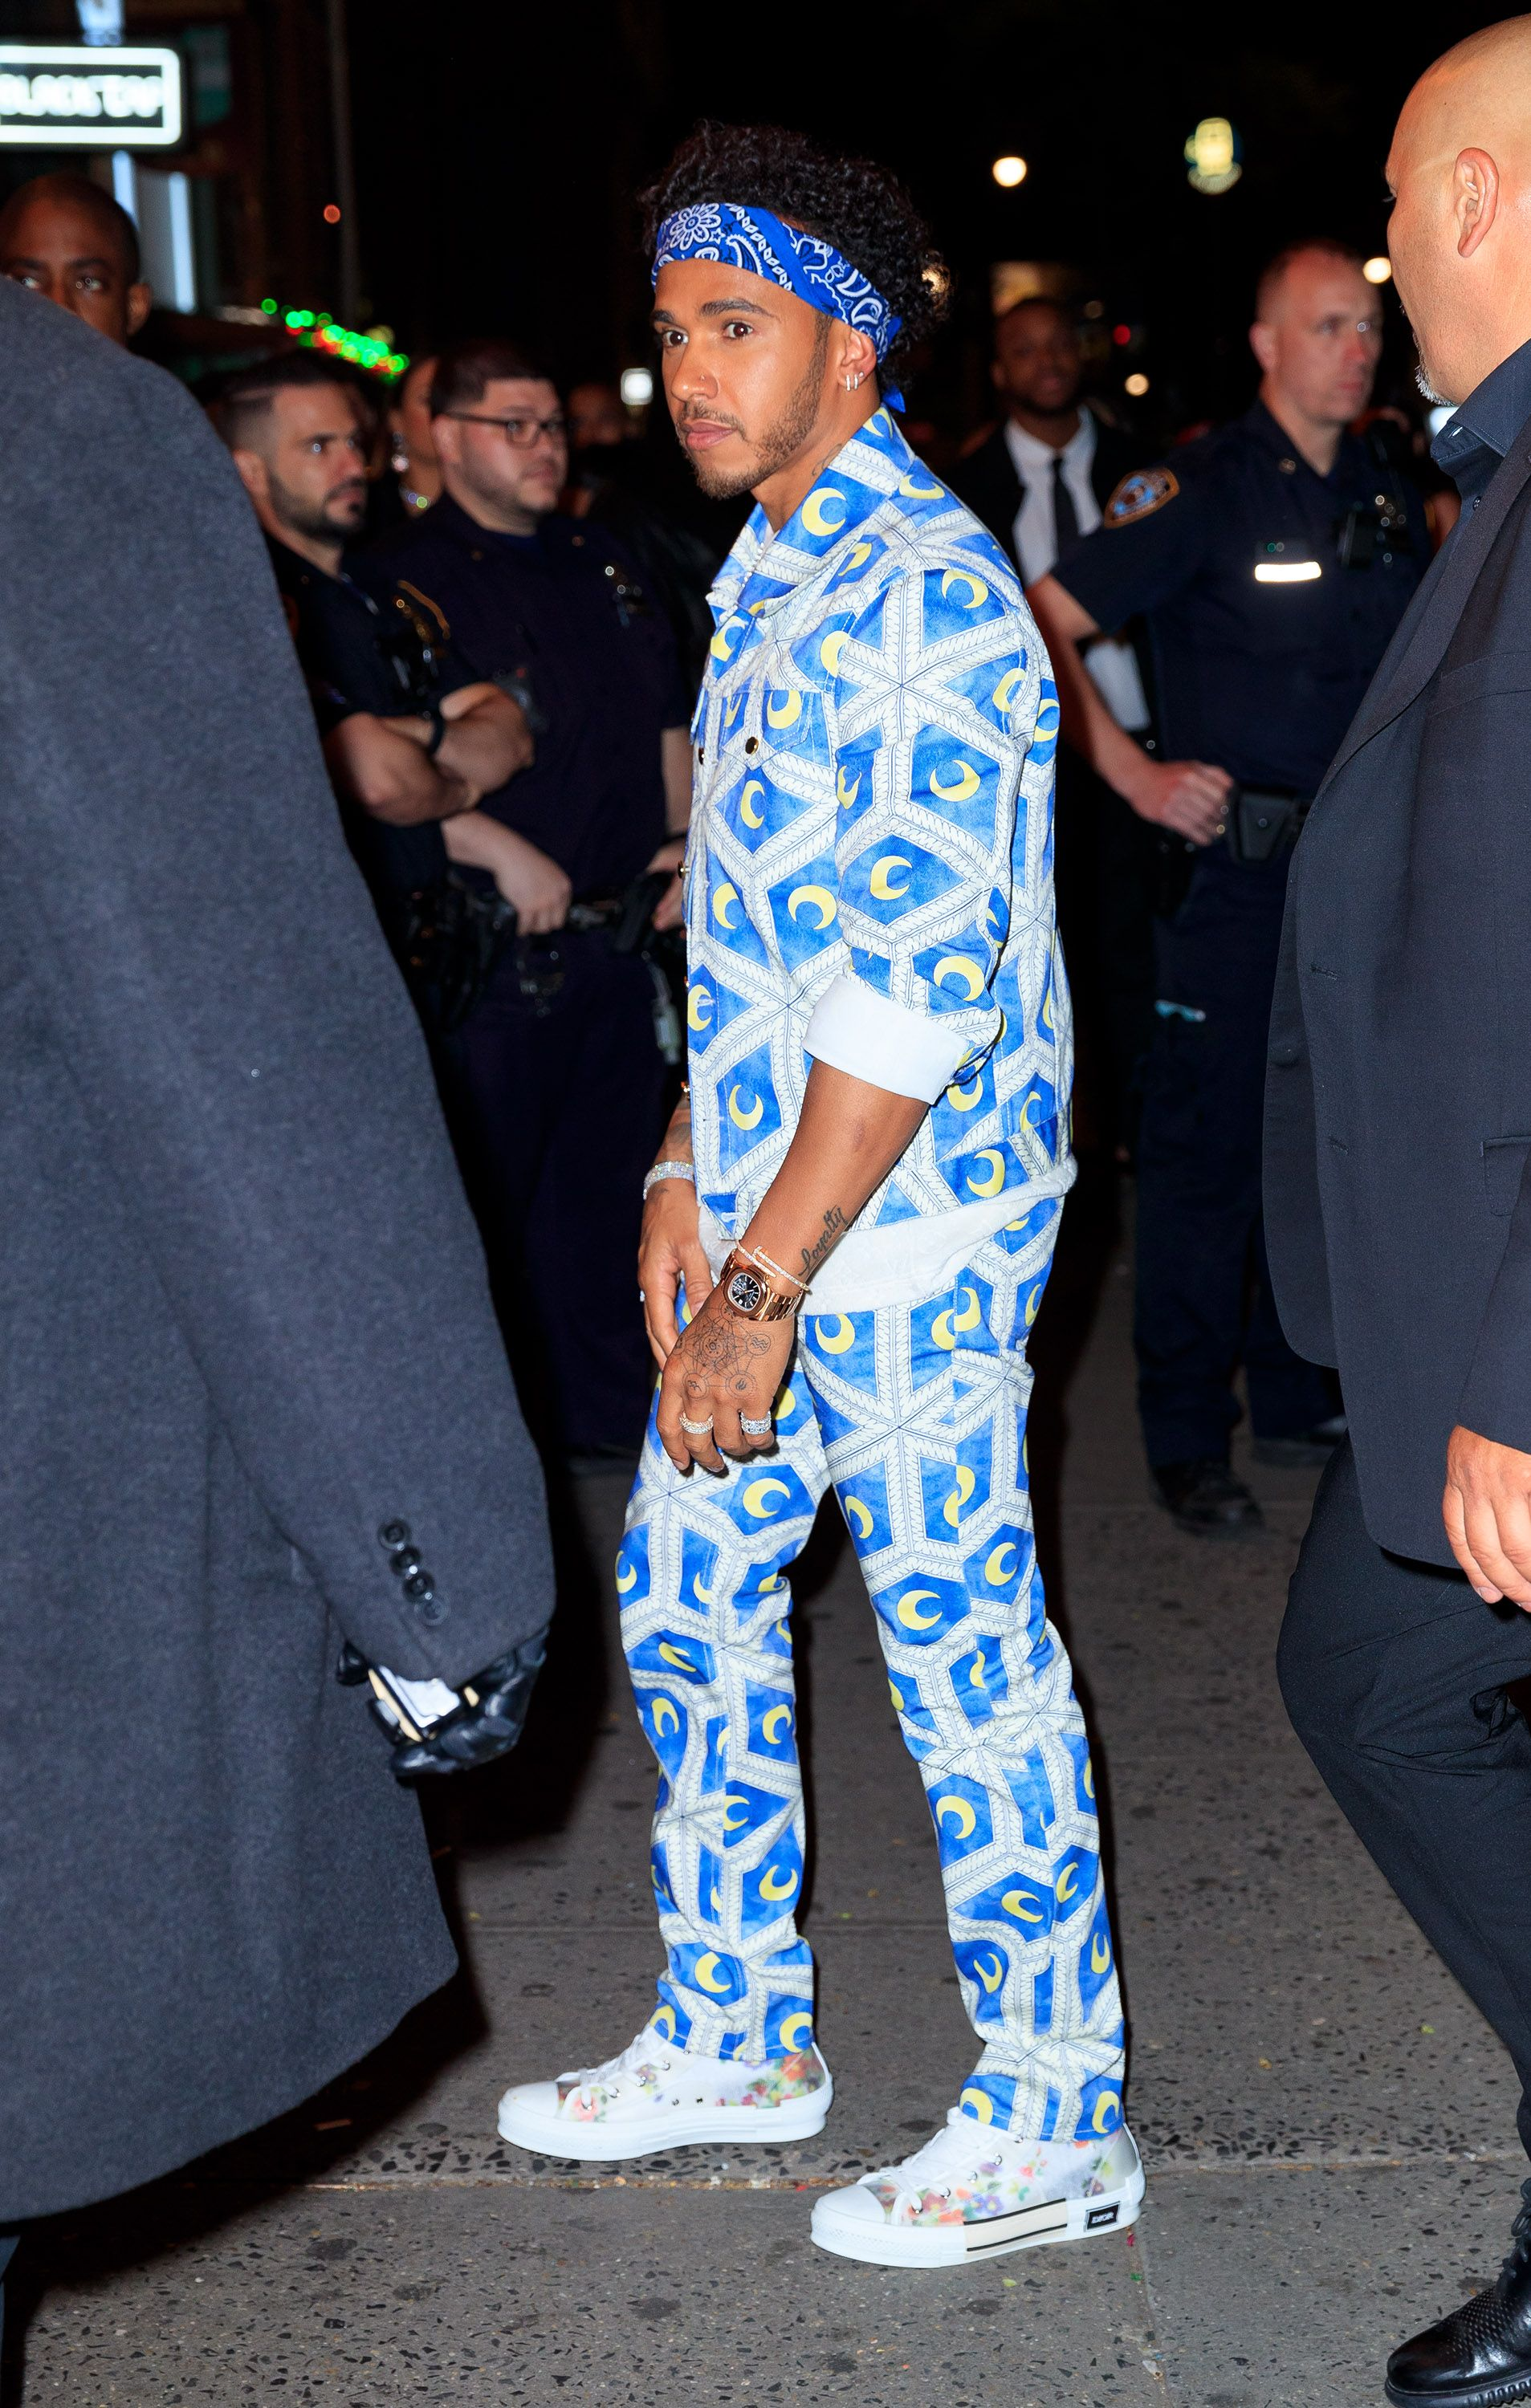 Lewis Hamilton Lewis Hamilton went sporty in a moon-printed tracksuit and sneakers with a blue bandana.